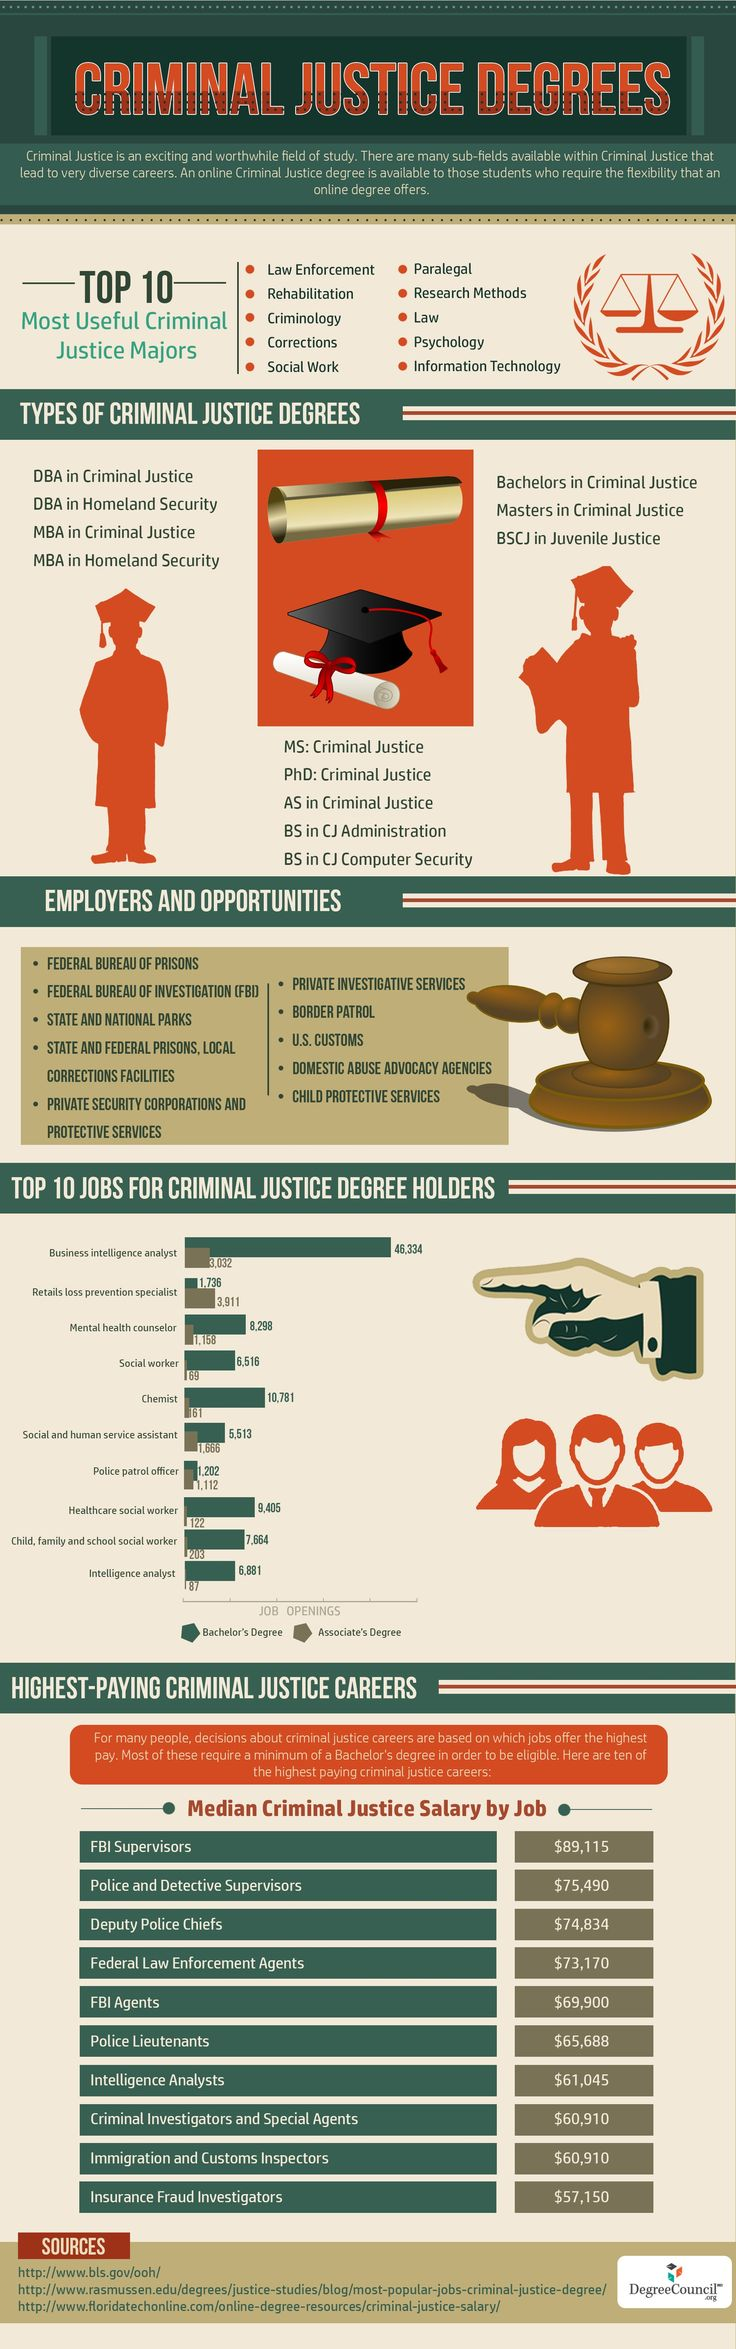 Criminal Justice Degrees